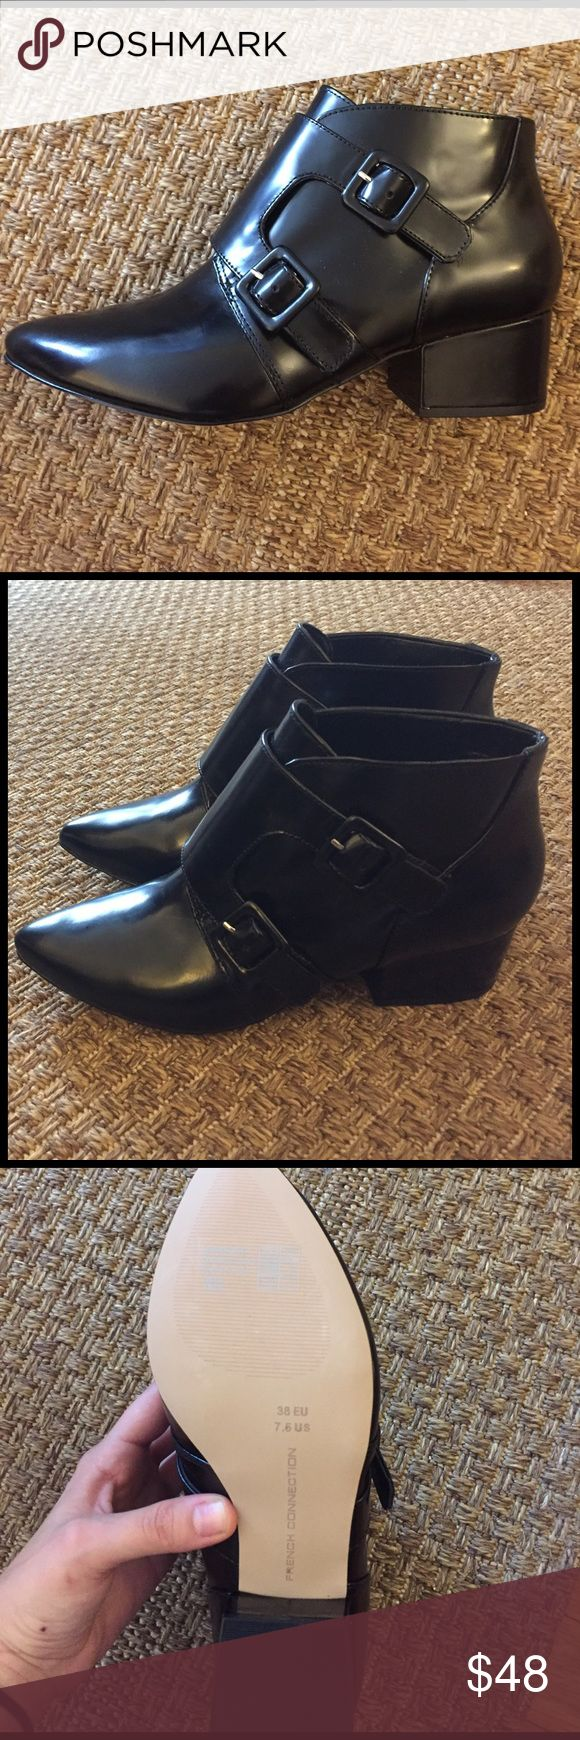 NWOT French Connection Roree booties Perfect heel height and super cute, these booties have never been worn because they're slightly small on me. Size 38 EU, 7.5 US French Connection Shoes Ankle Boots & Booties